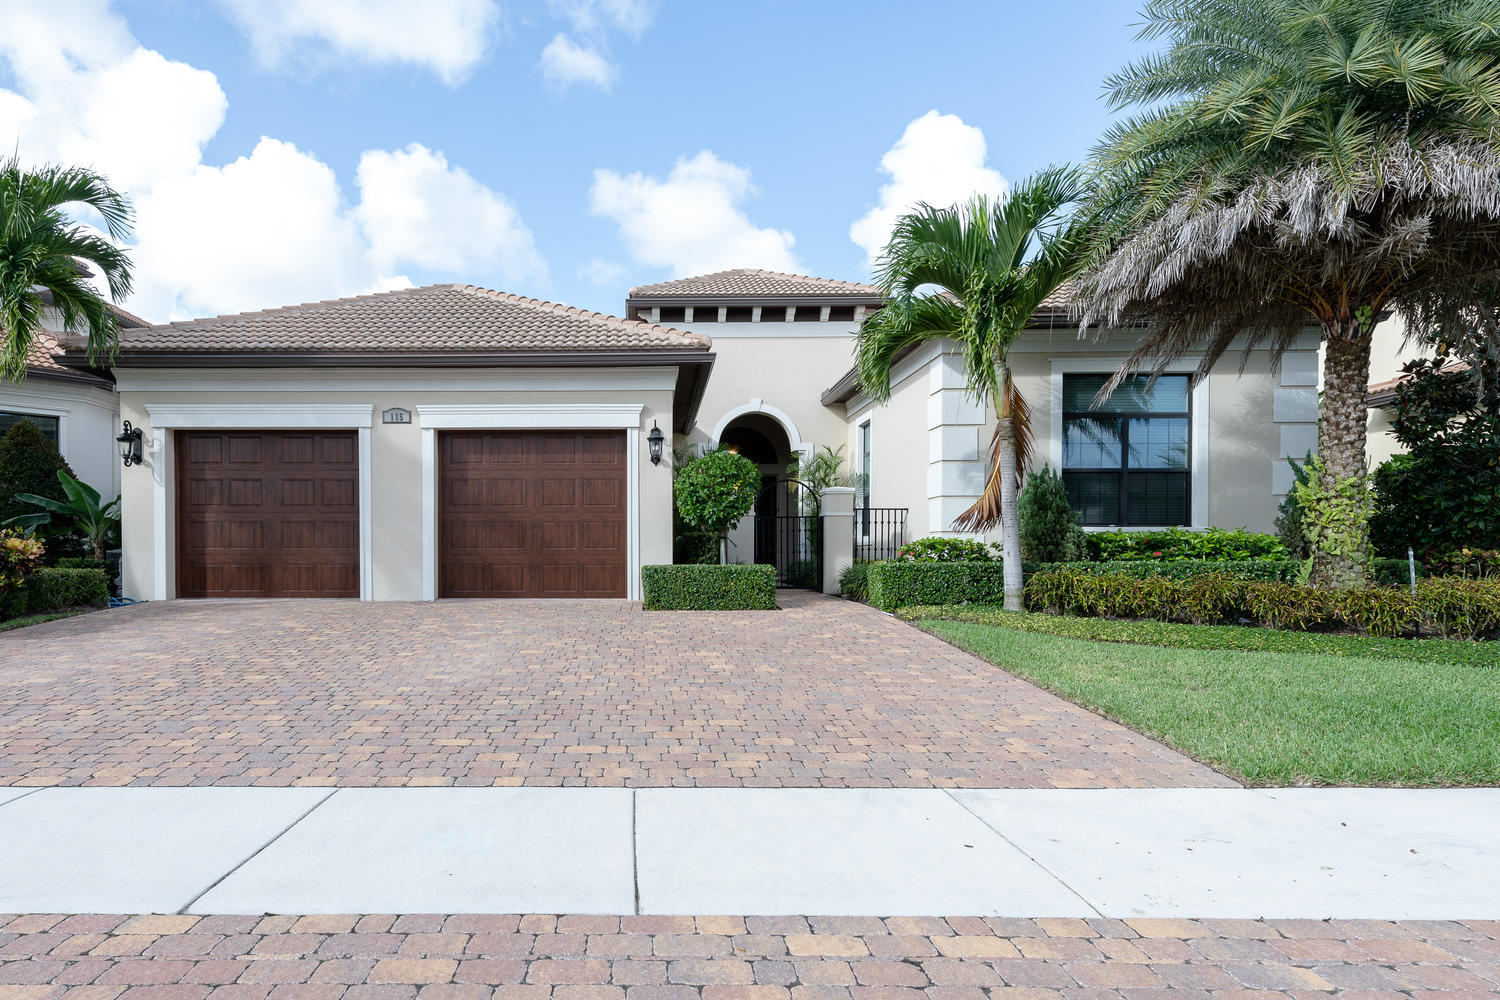 Home for sale in Gardenia Isles Palm Beach Gardens Florida